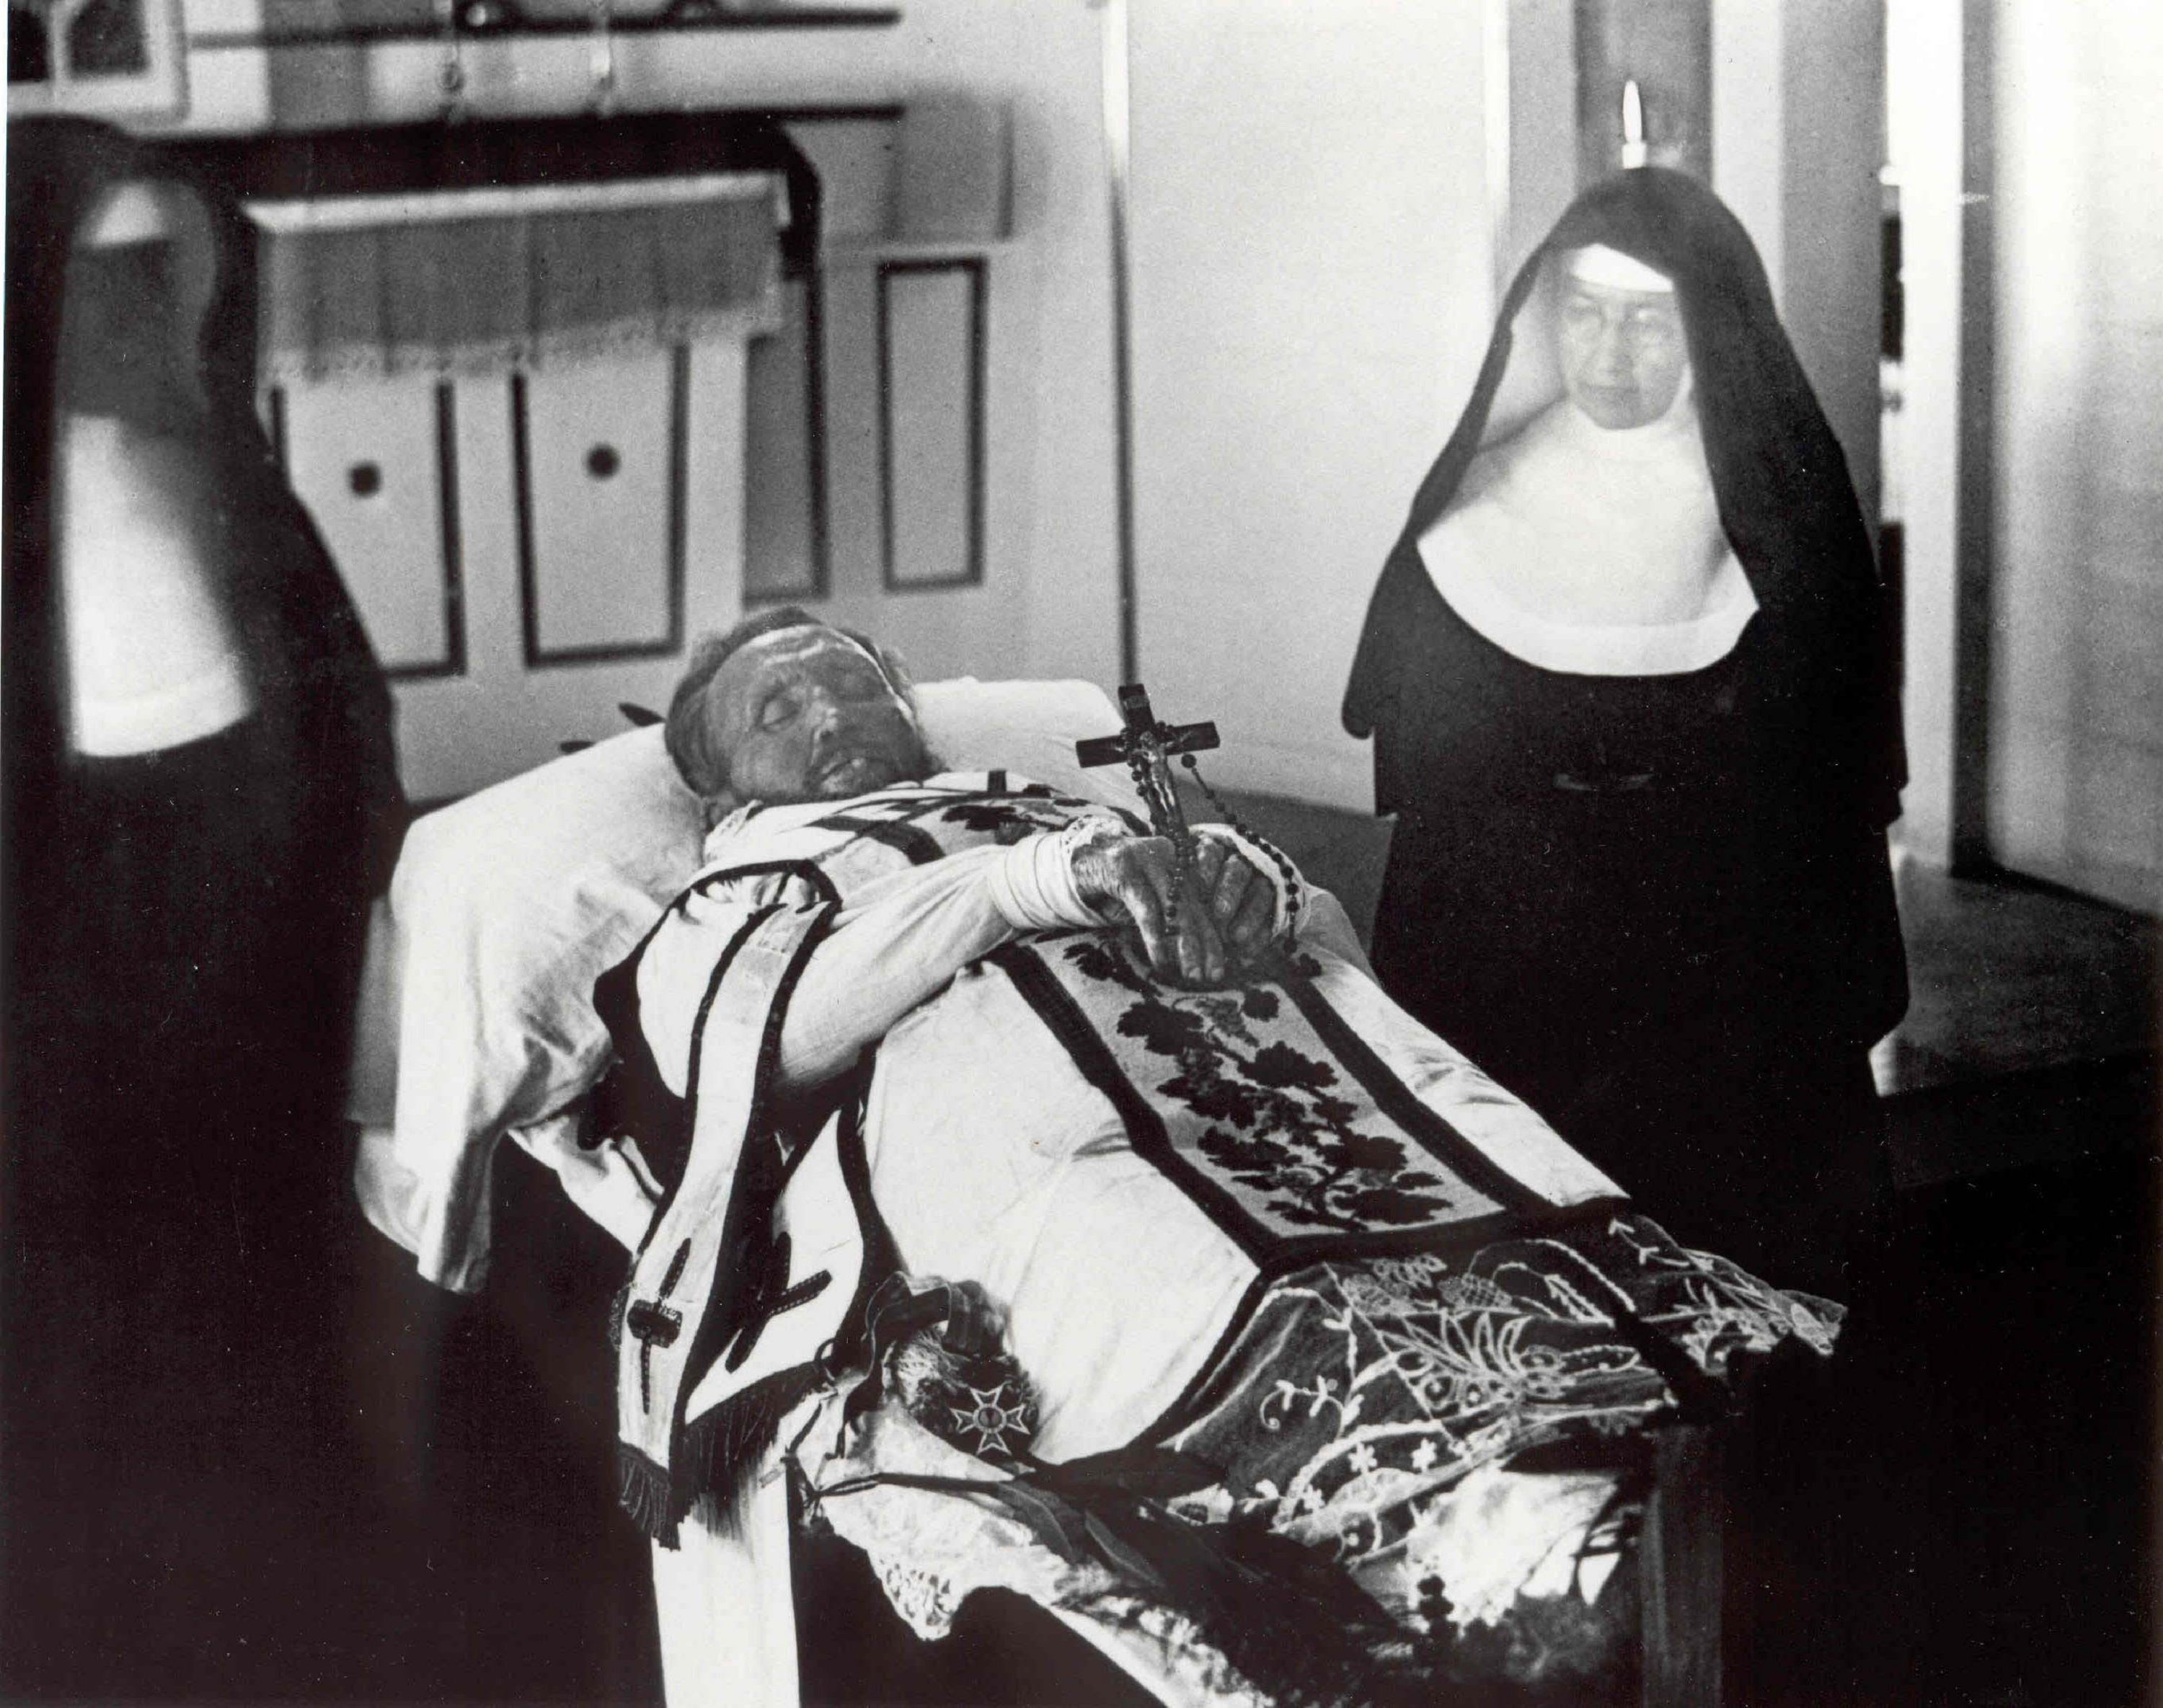 Father_Damien_on_his_funeral_bier_with_Mother_Marianne_Cope_by_his_side